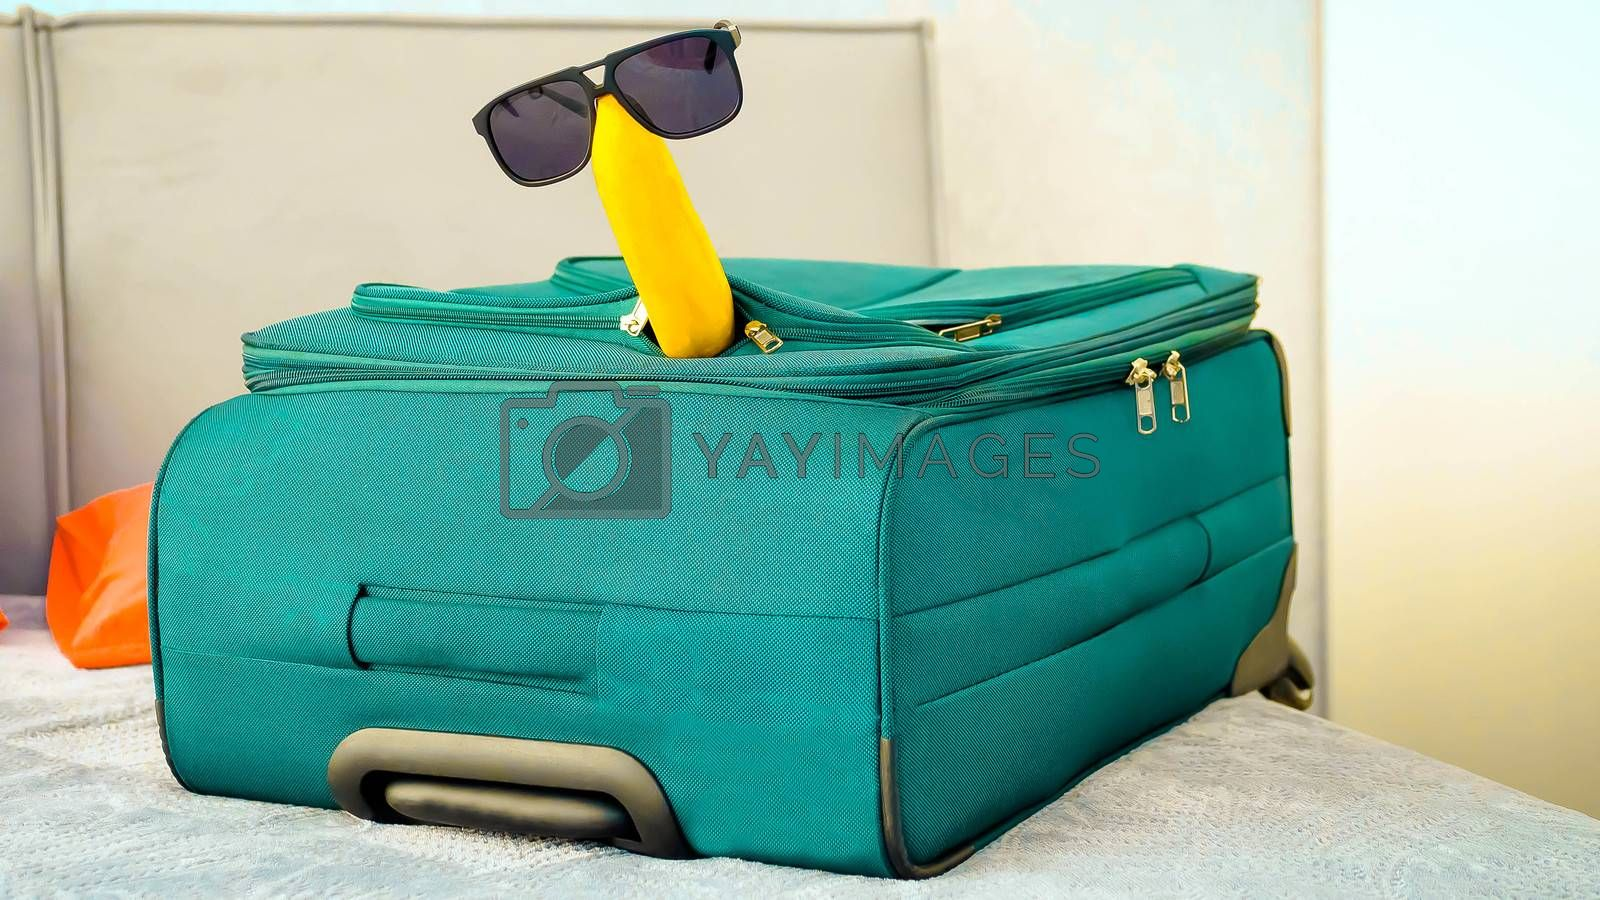 Royalty free image of Banana in sunglasses with a suitcase in an apartment,in a hotel on the bed,close-up. by Andriii_Klapkoo